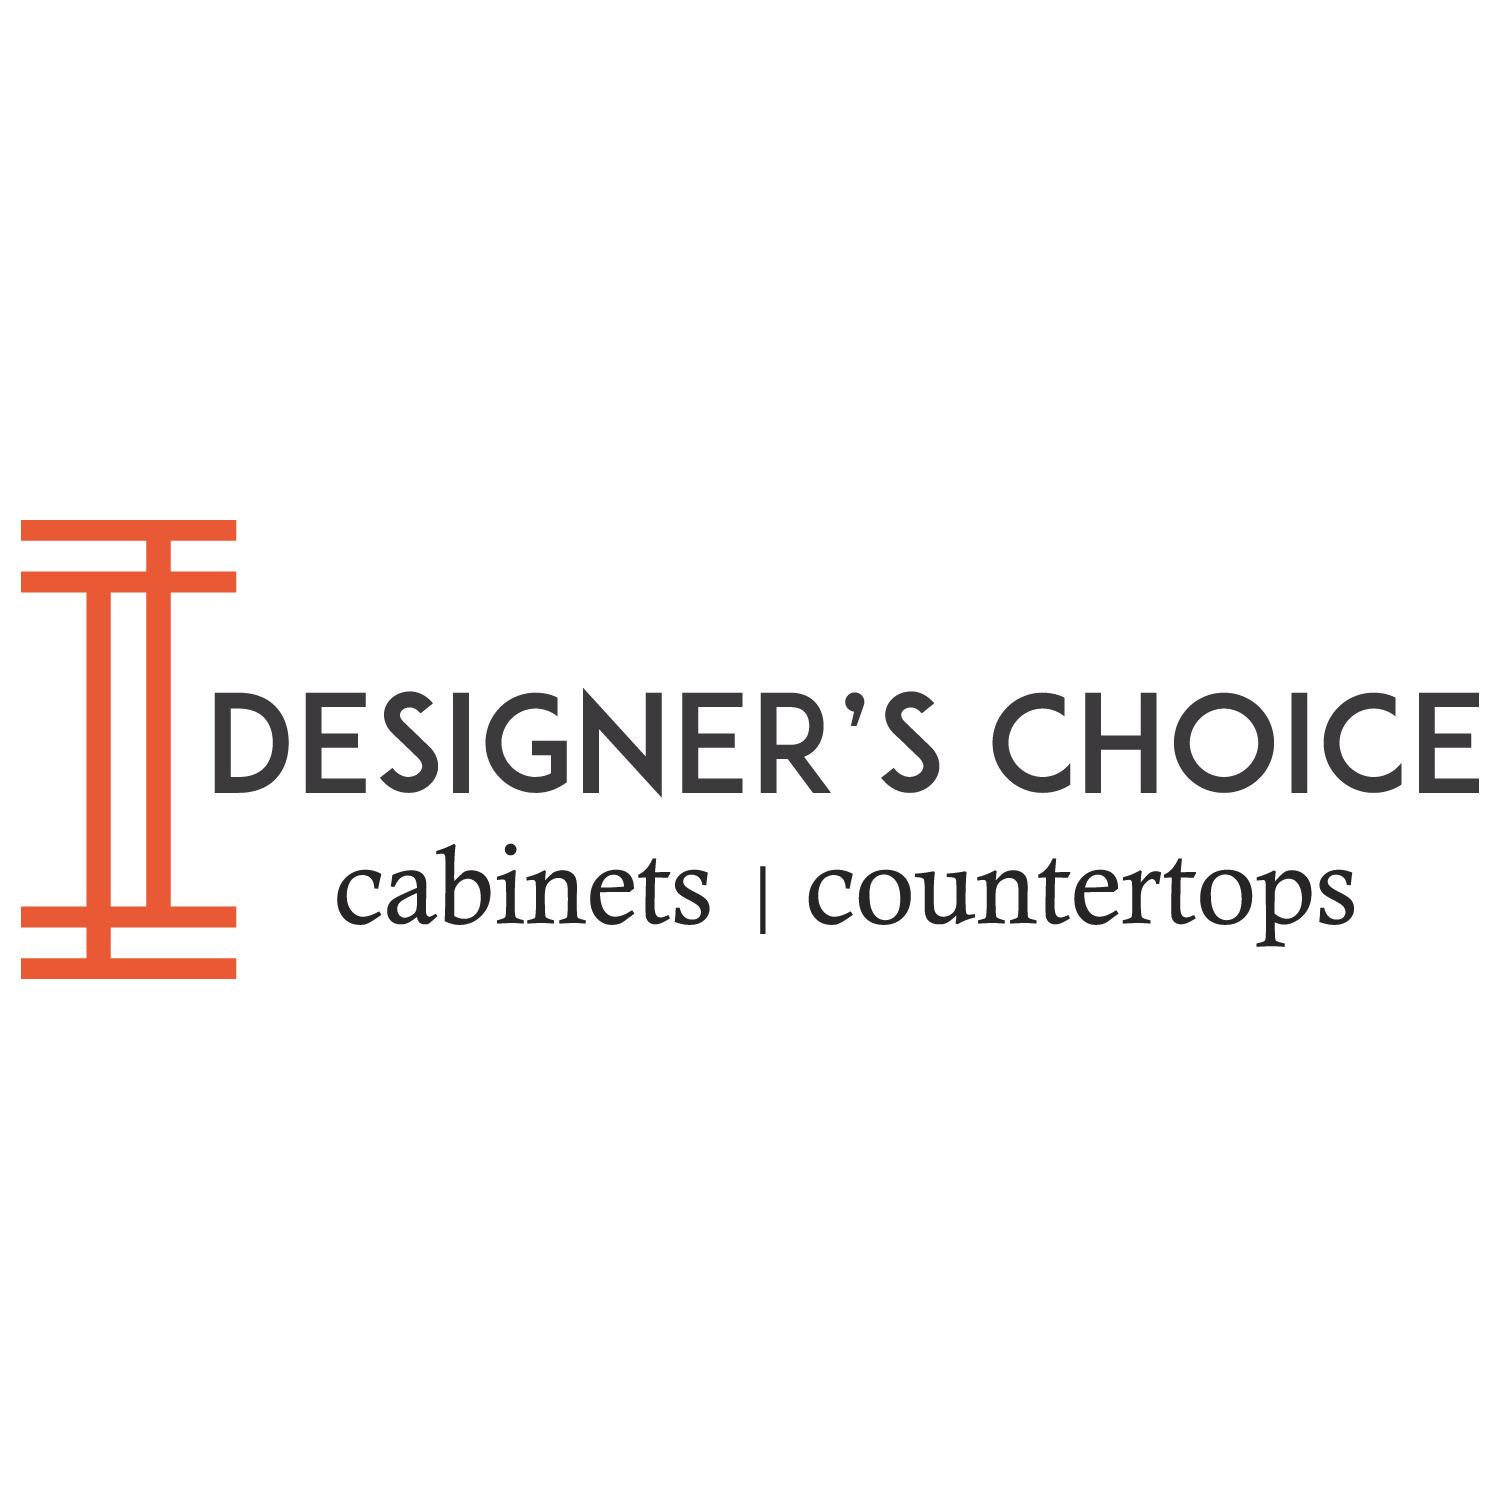 Designer's Choice Cabinets & Countertops image 5